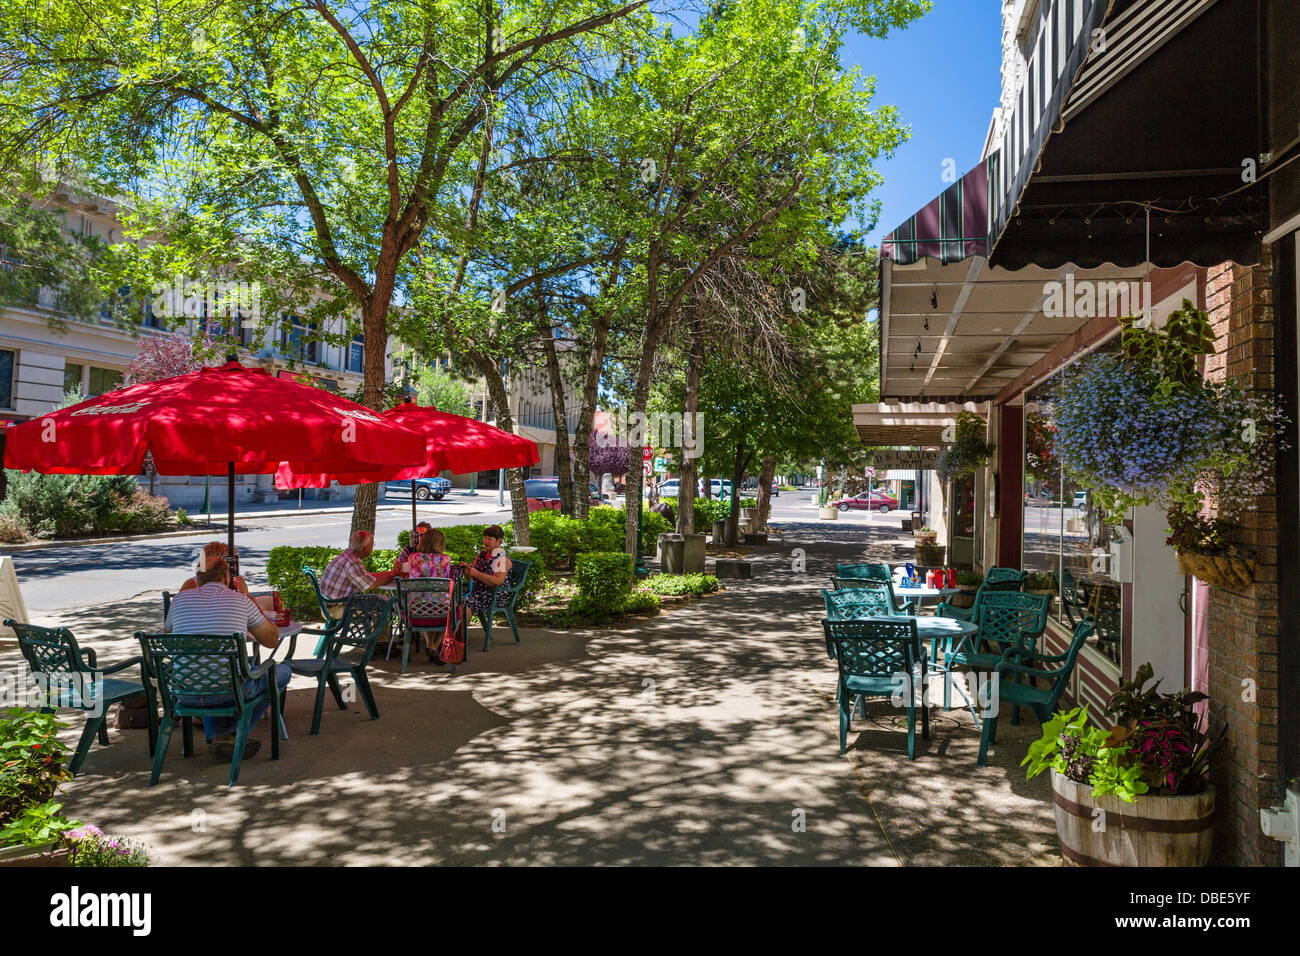 Sidewalk cafe and shops on Main Avenue in downtown Twin Falls, Idaho, USA - Stock Image